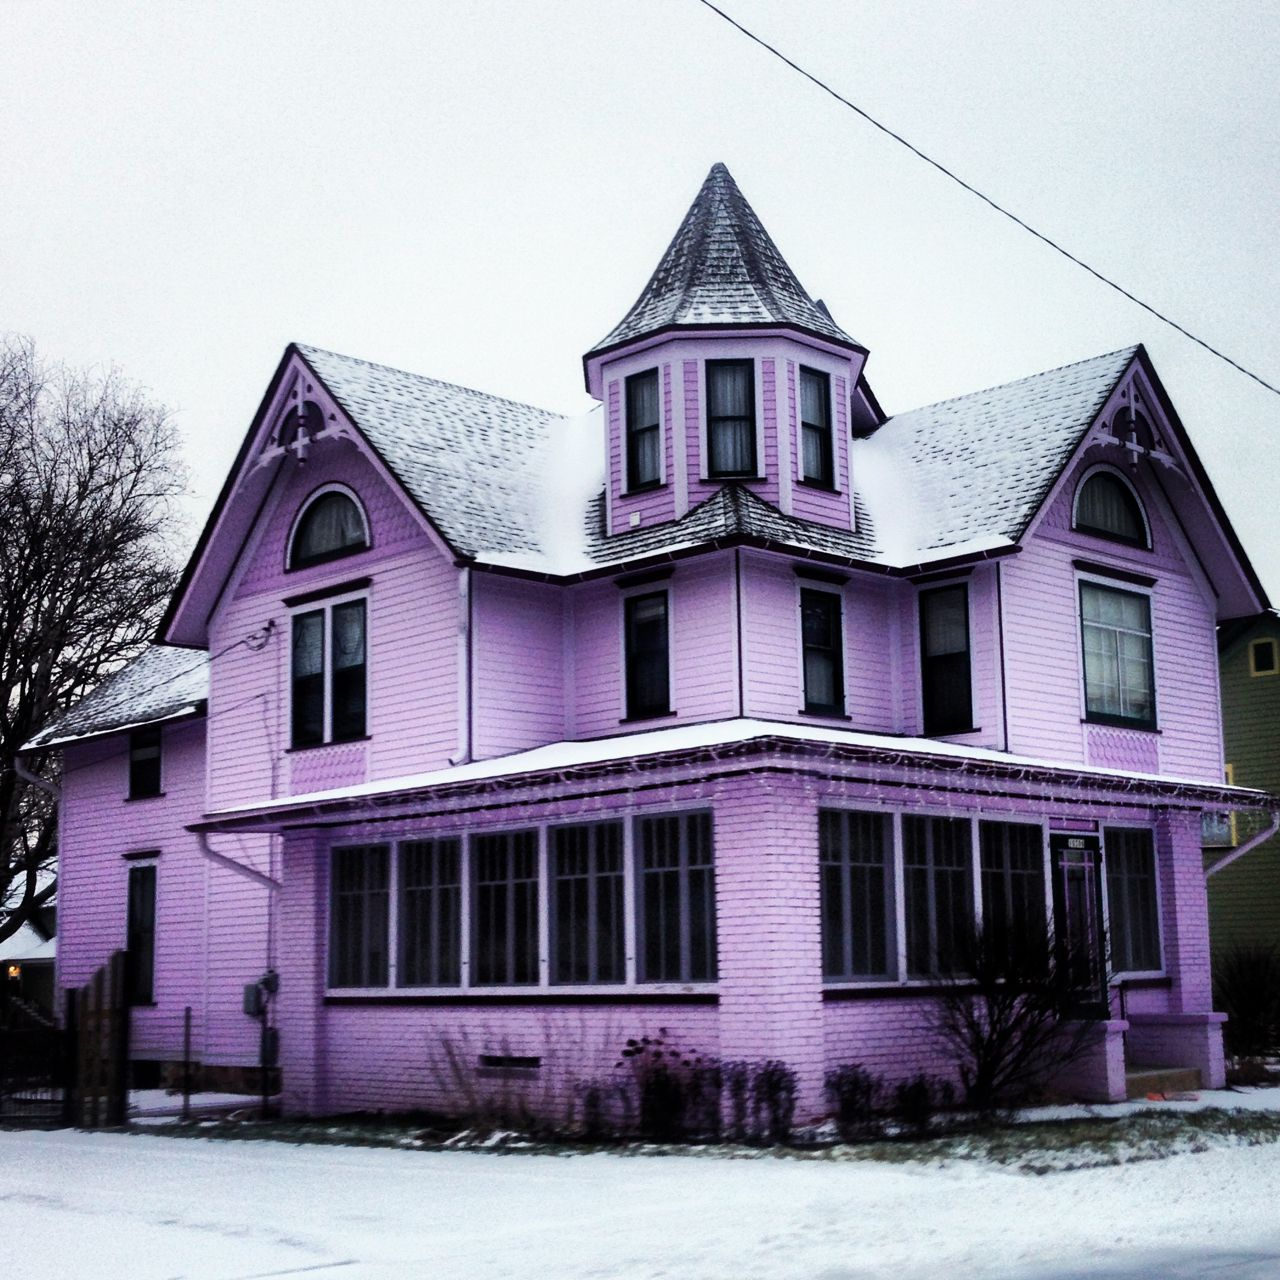 This purple Victorian house is trs quaint! A nice find somewhere in  Illinois.